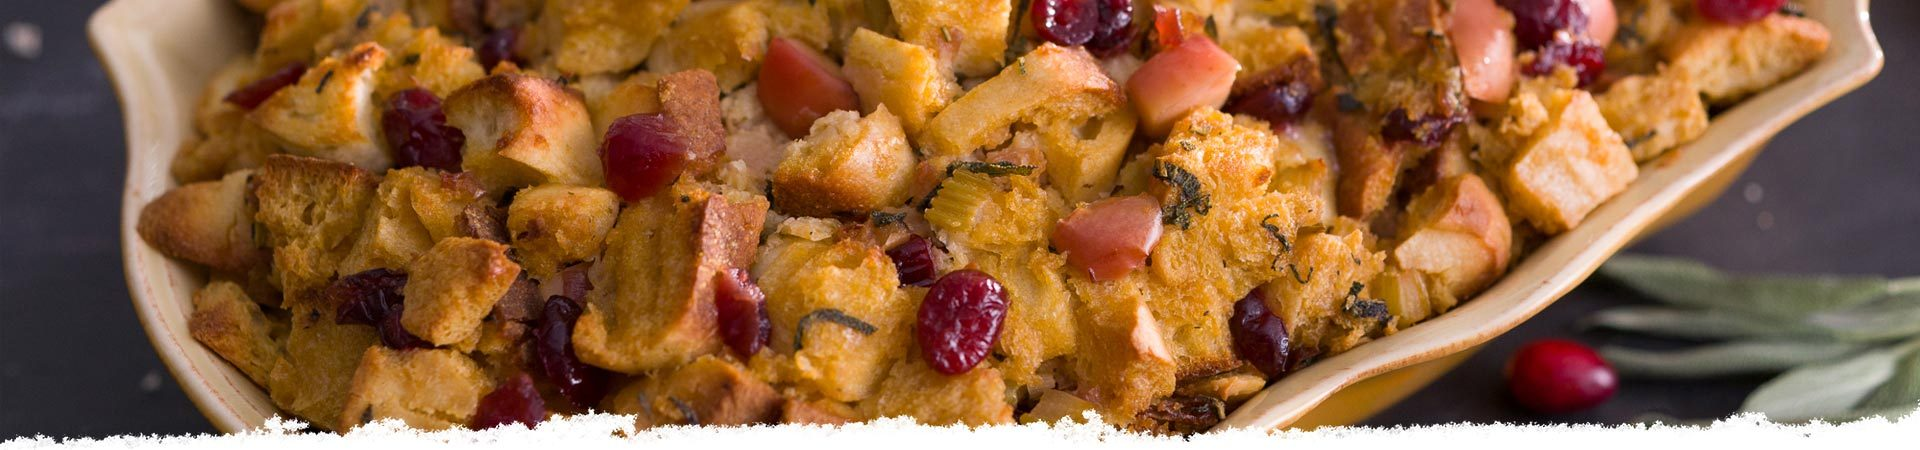 Focaccia, Cranberry, and Sage Stuffing